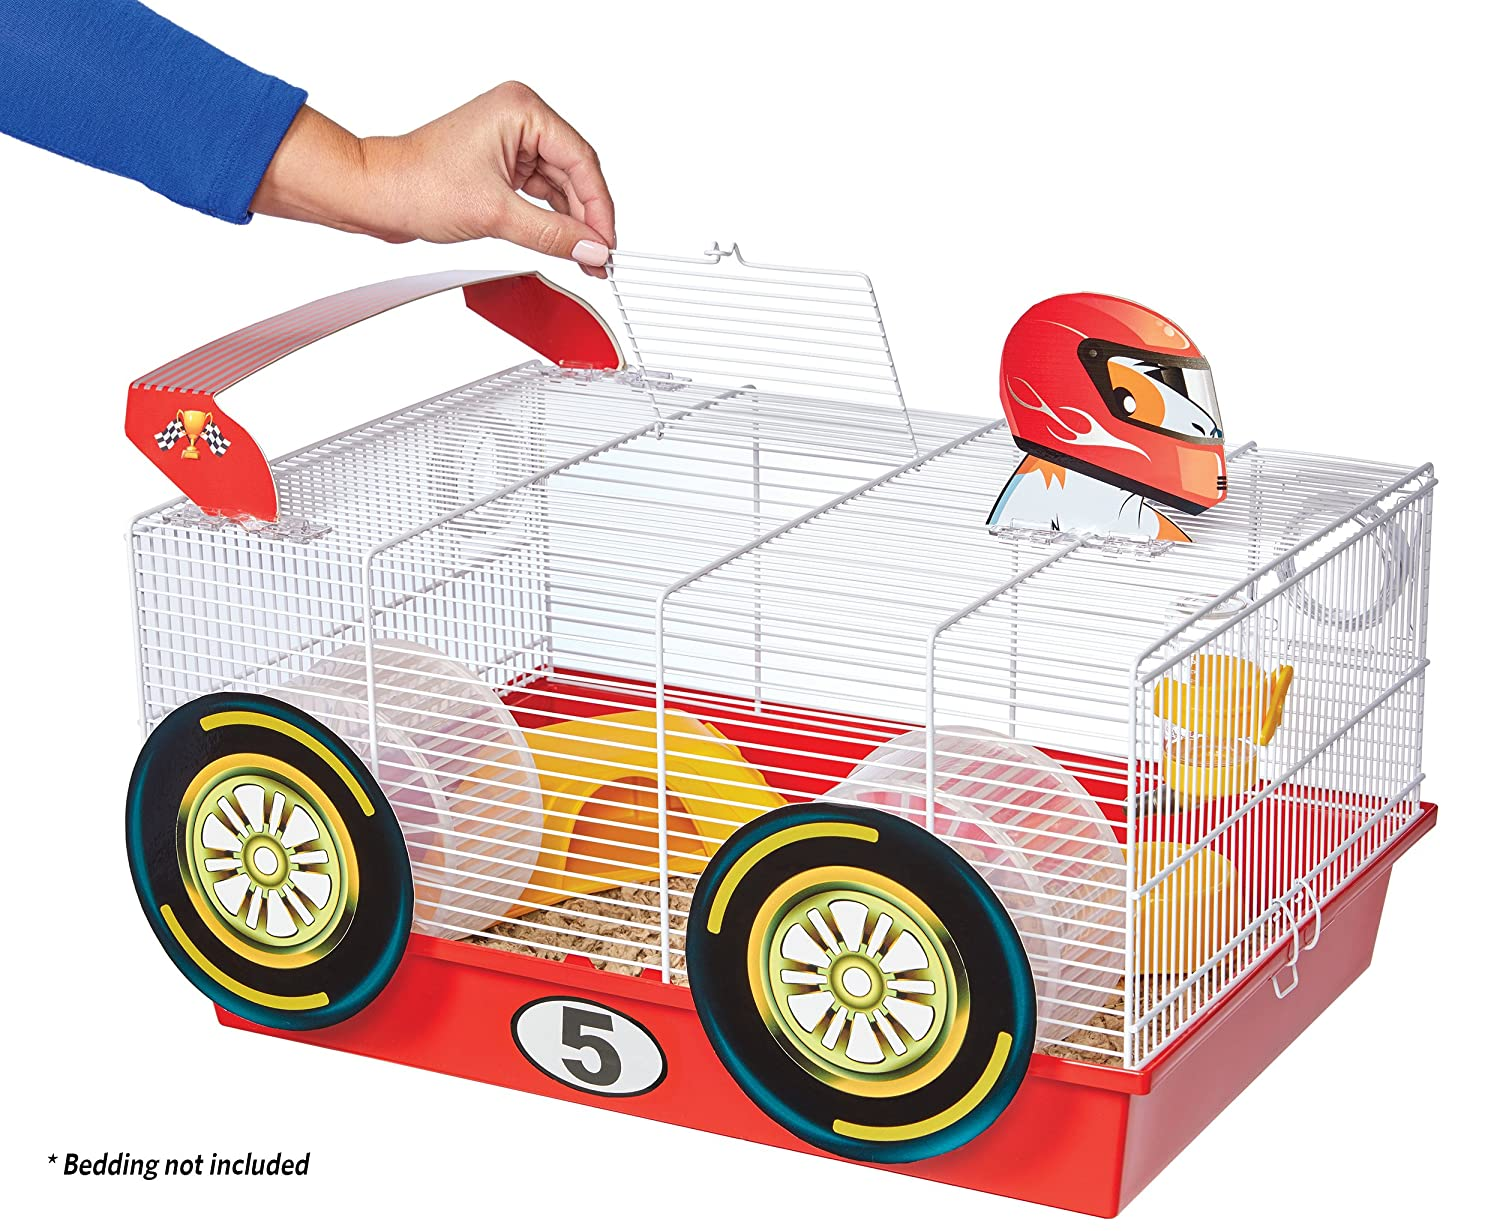 Amazon.com : MidWest Homes for Pets Hamster Cage | Fun Race Car Theme | Accessories & Decals Included : Pet Supplies